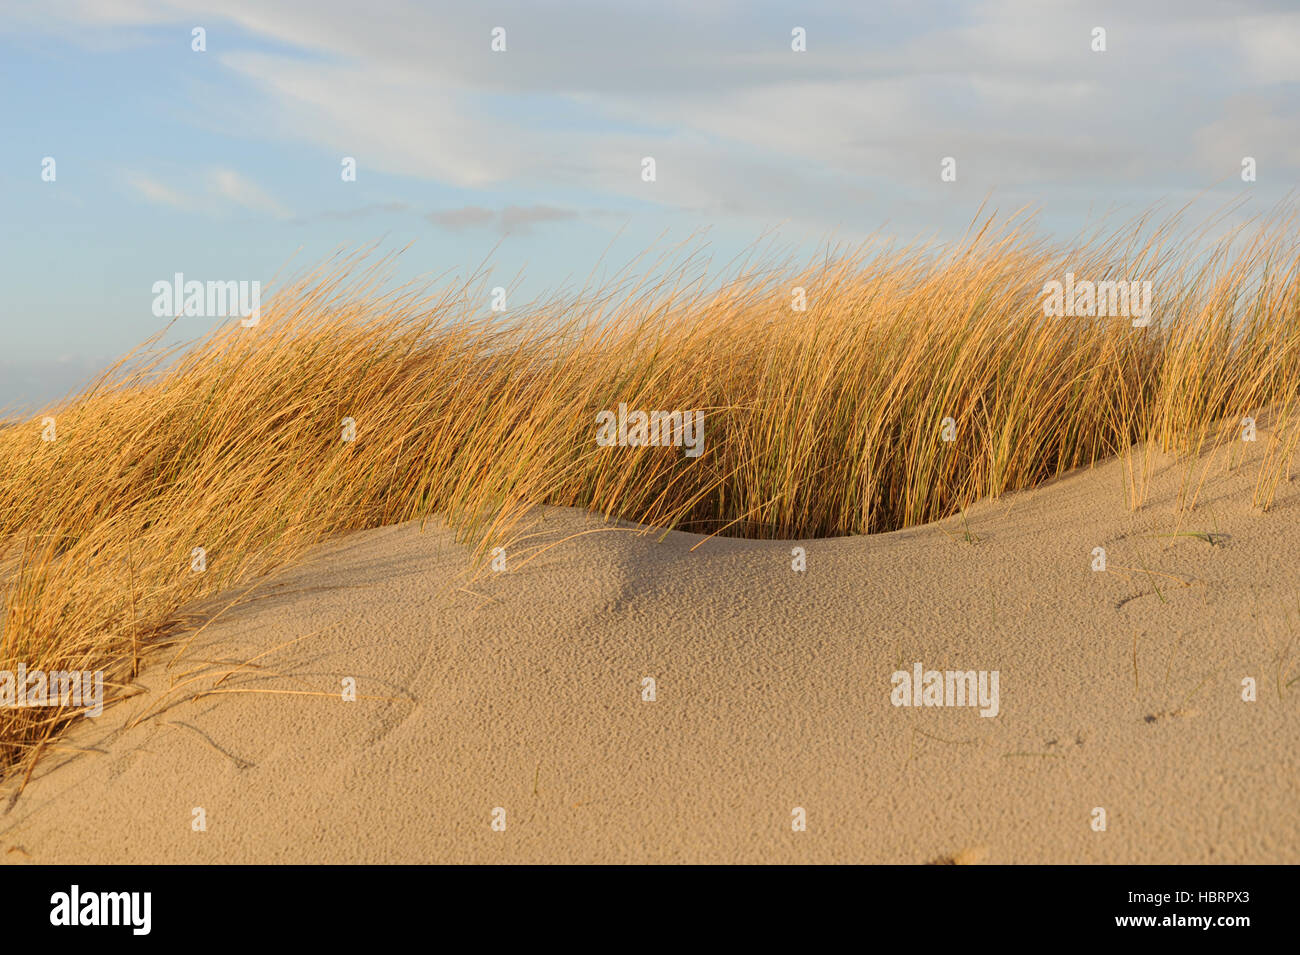 Sand dune and marram grass of Sylt - Stock Image